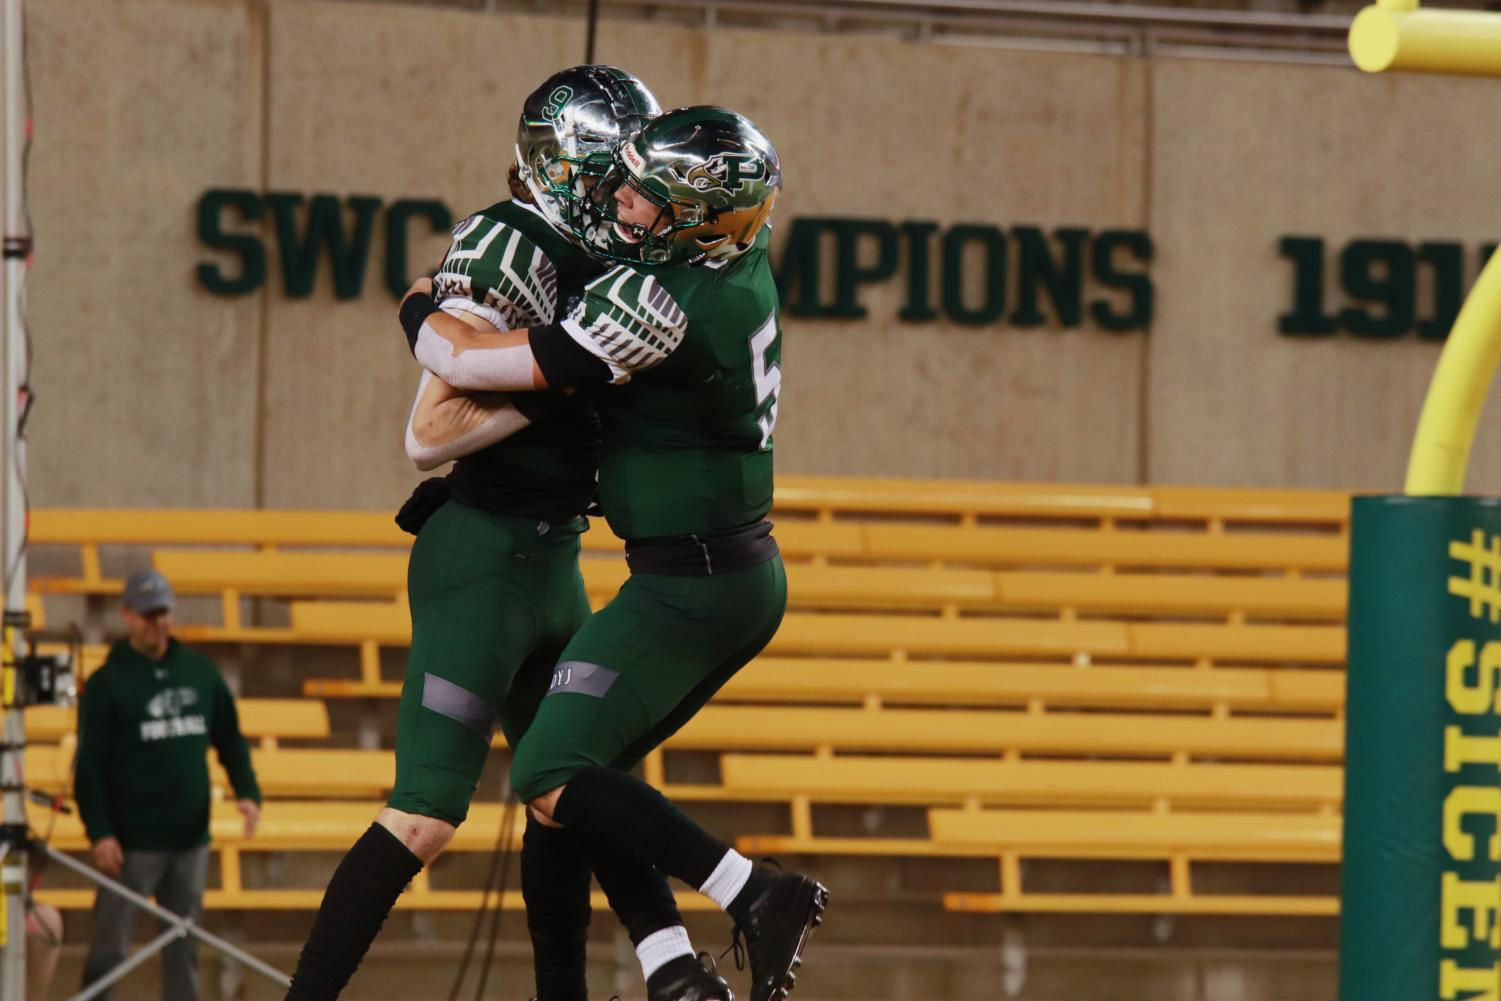 Quarterback Jackson Berry, No. 5, and receiver Cameron Harpole, No. 9, celebrate a 46-yard pass touchdown.